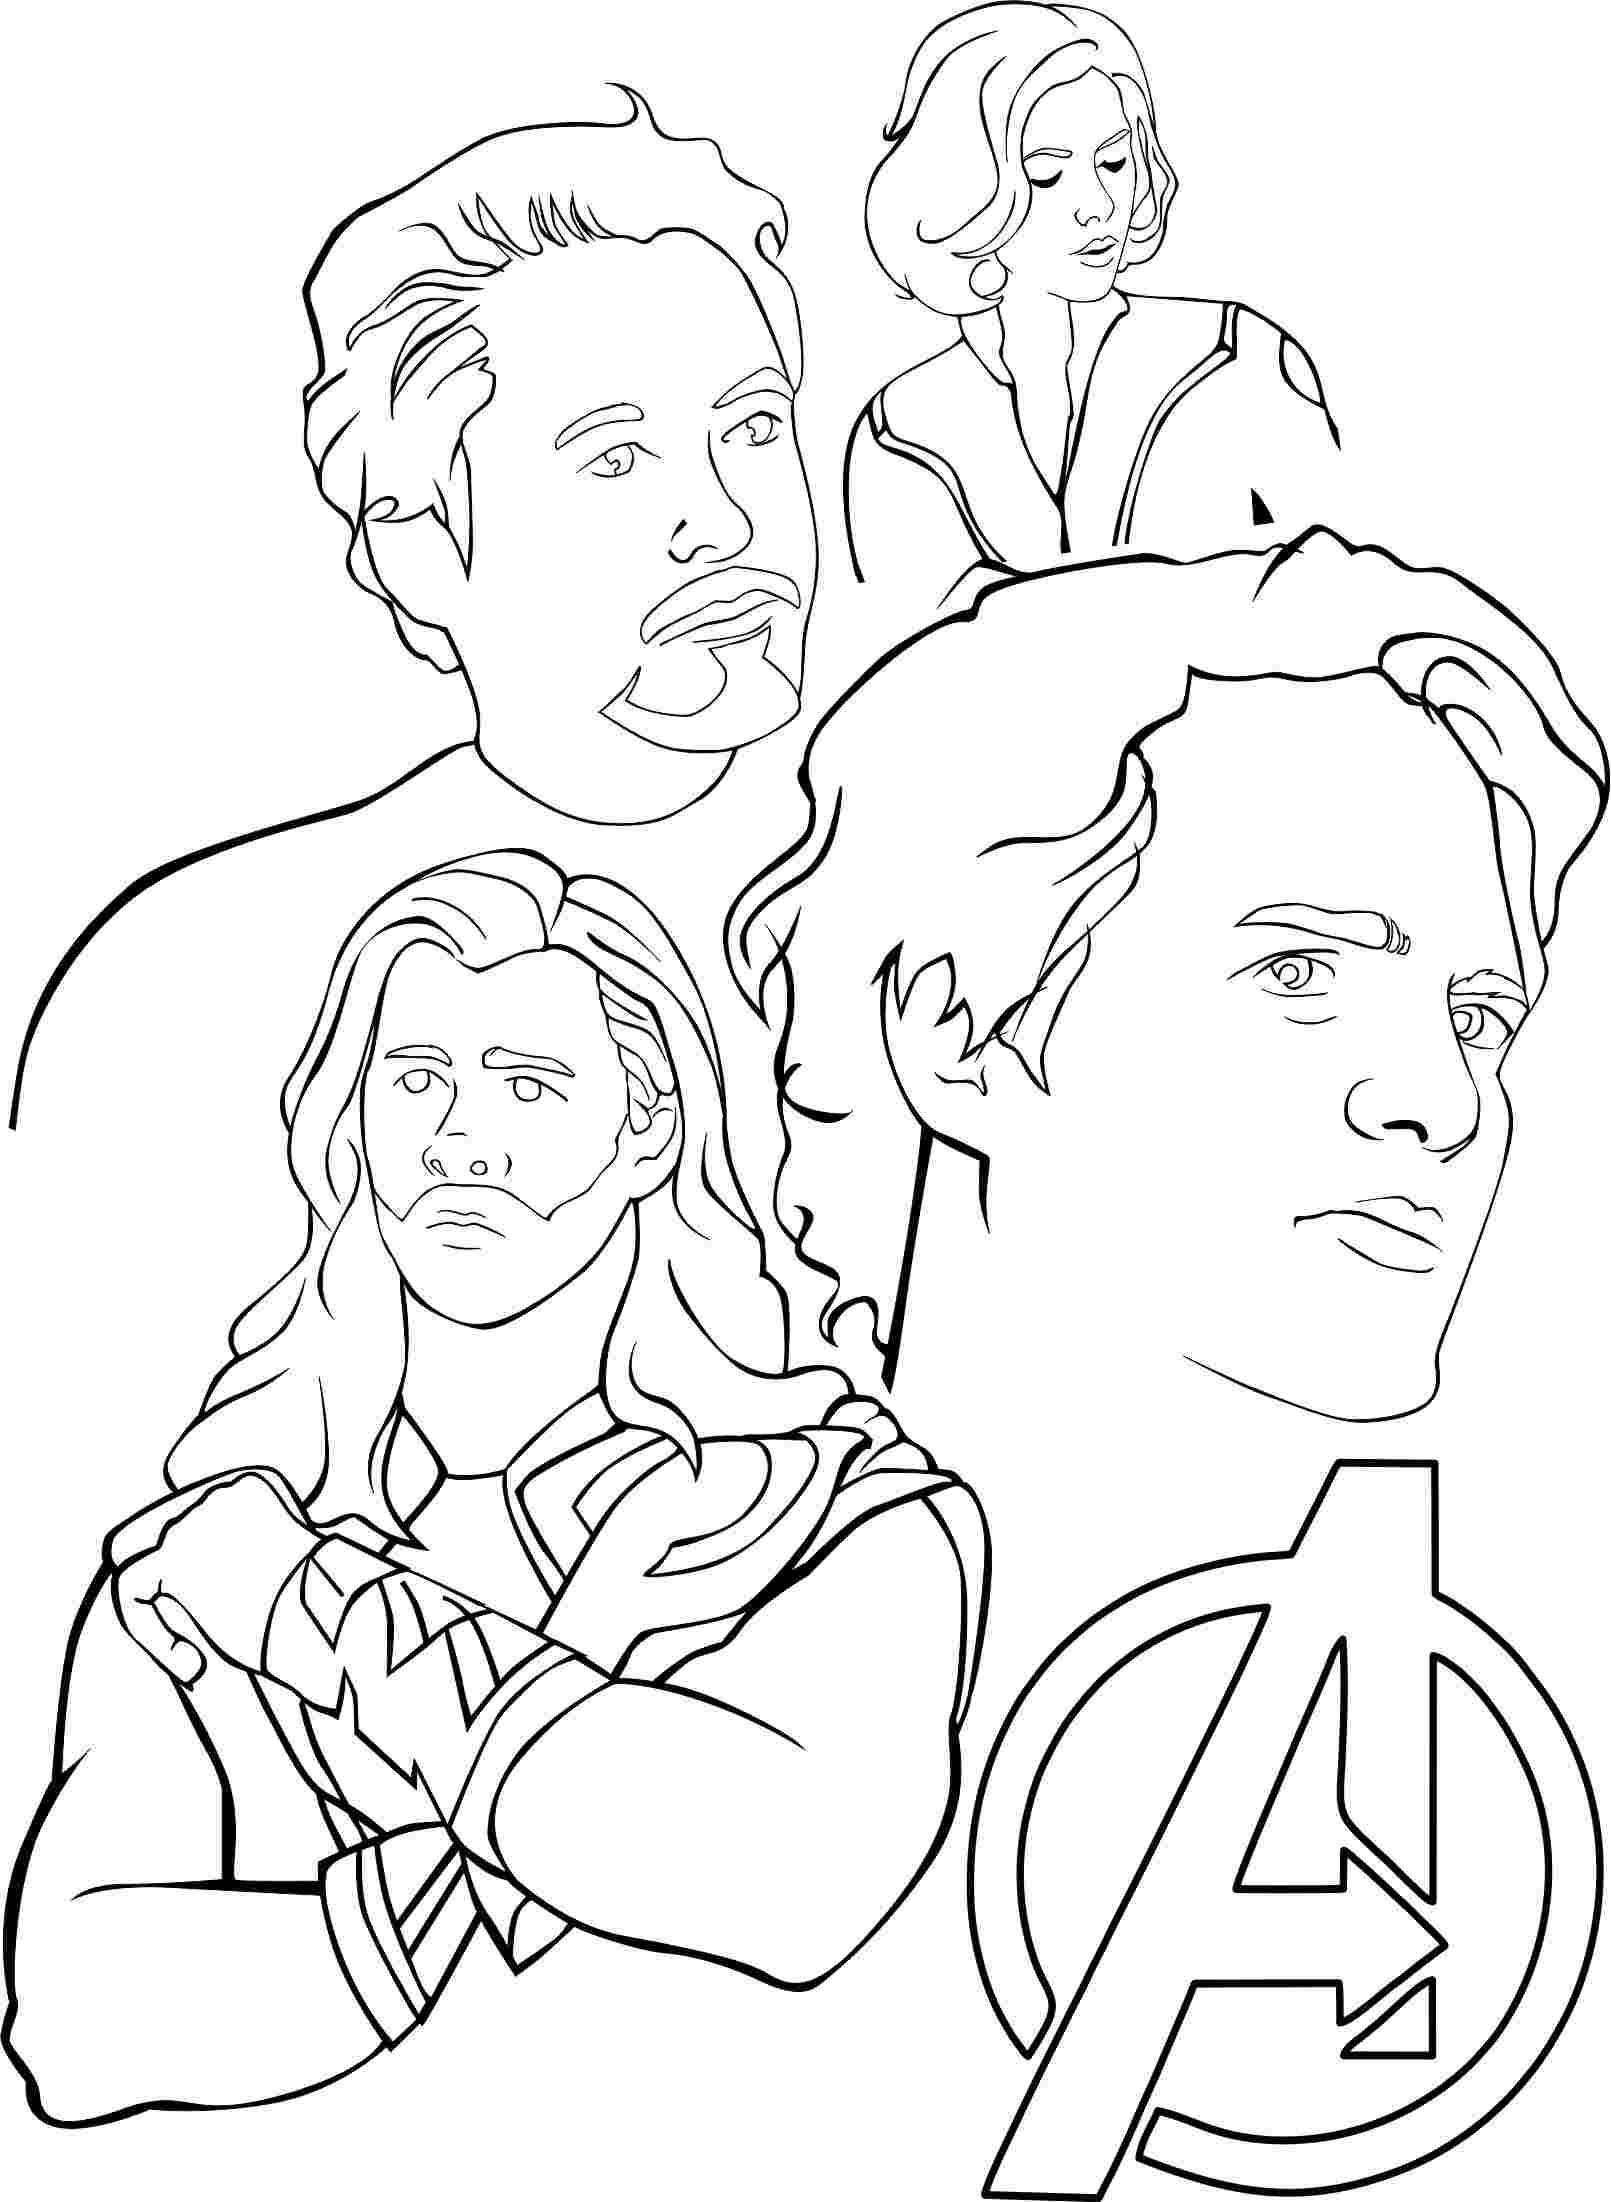 avengers for coloring printable avengers coloring pages kids adults pdf for coloring avengers